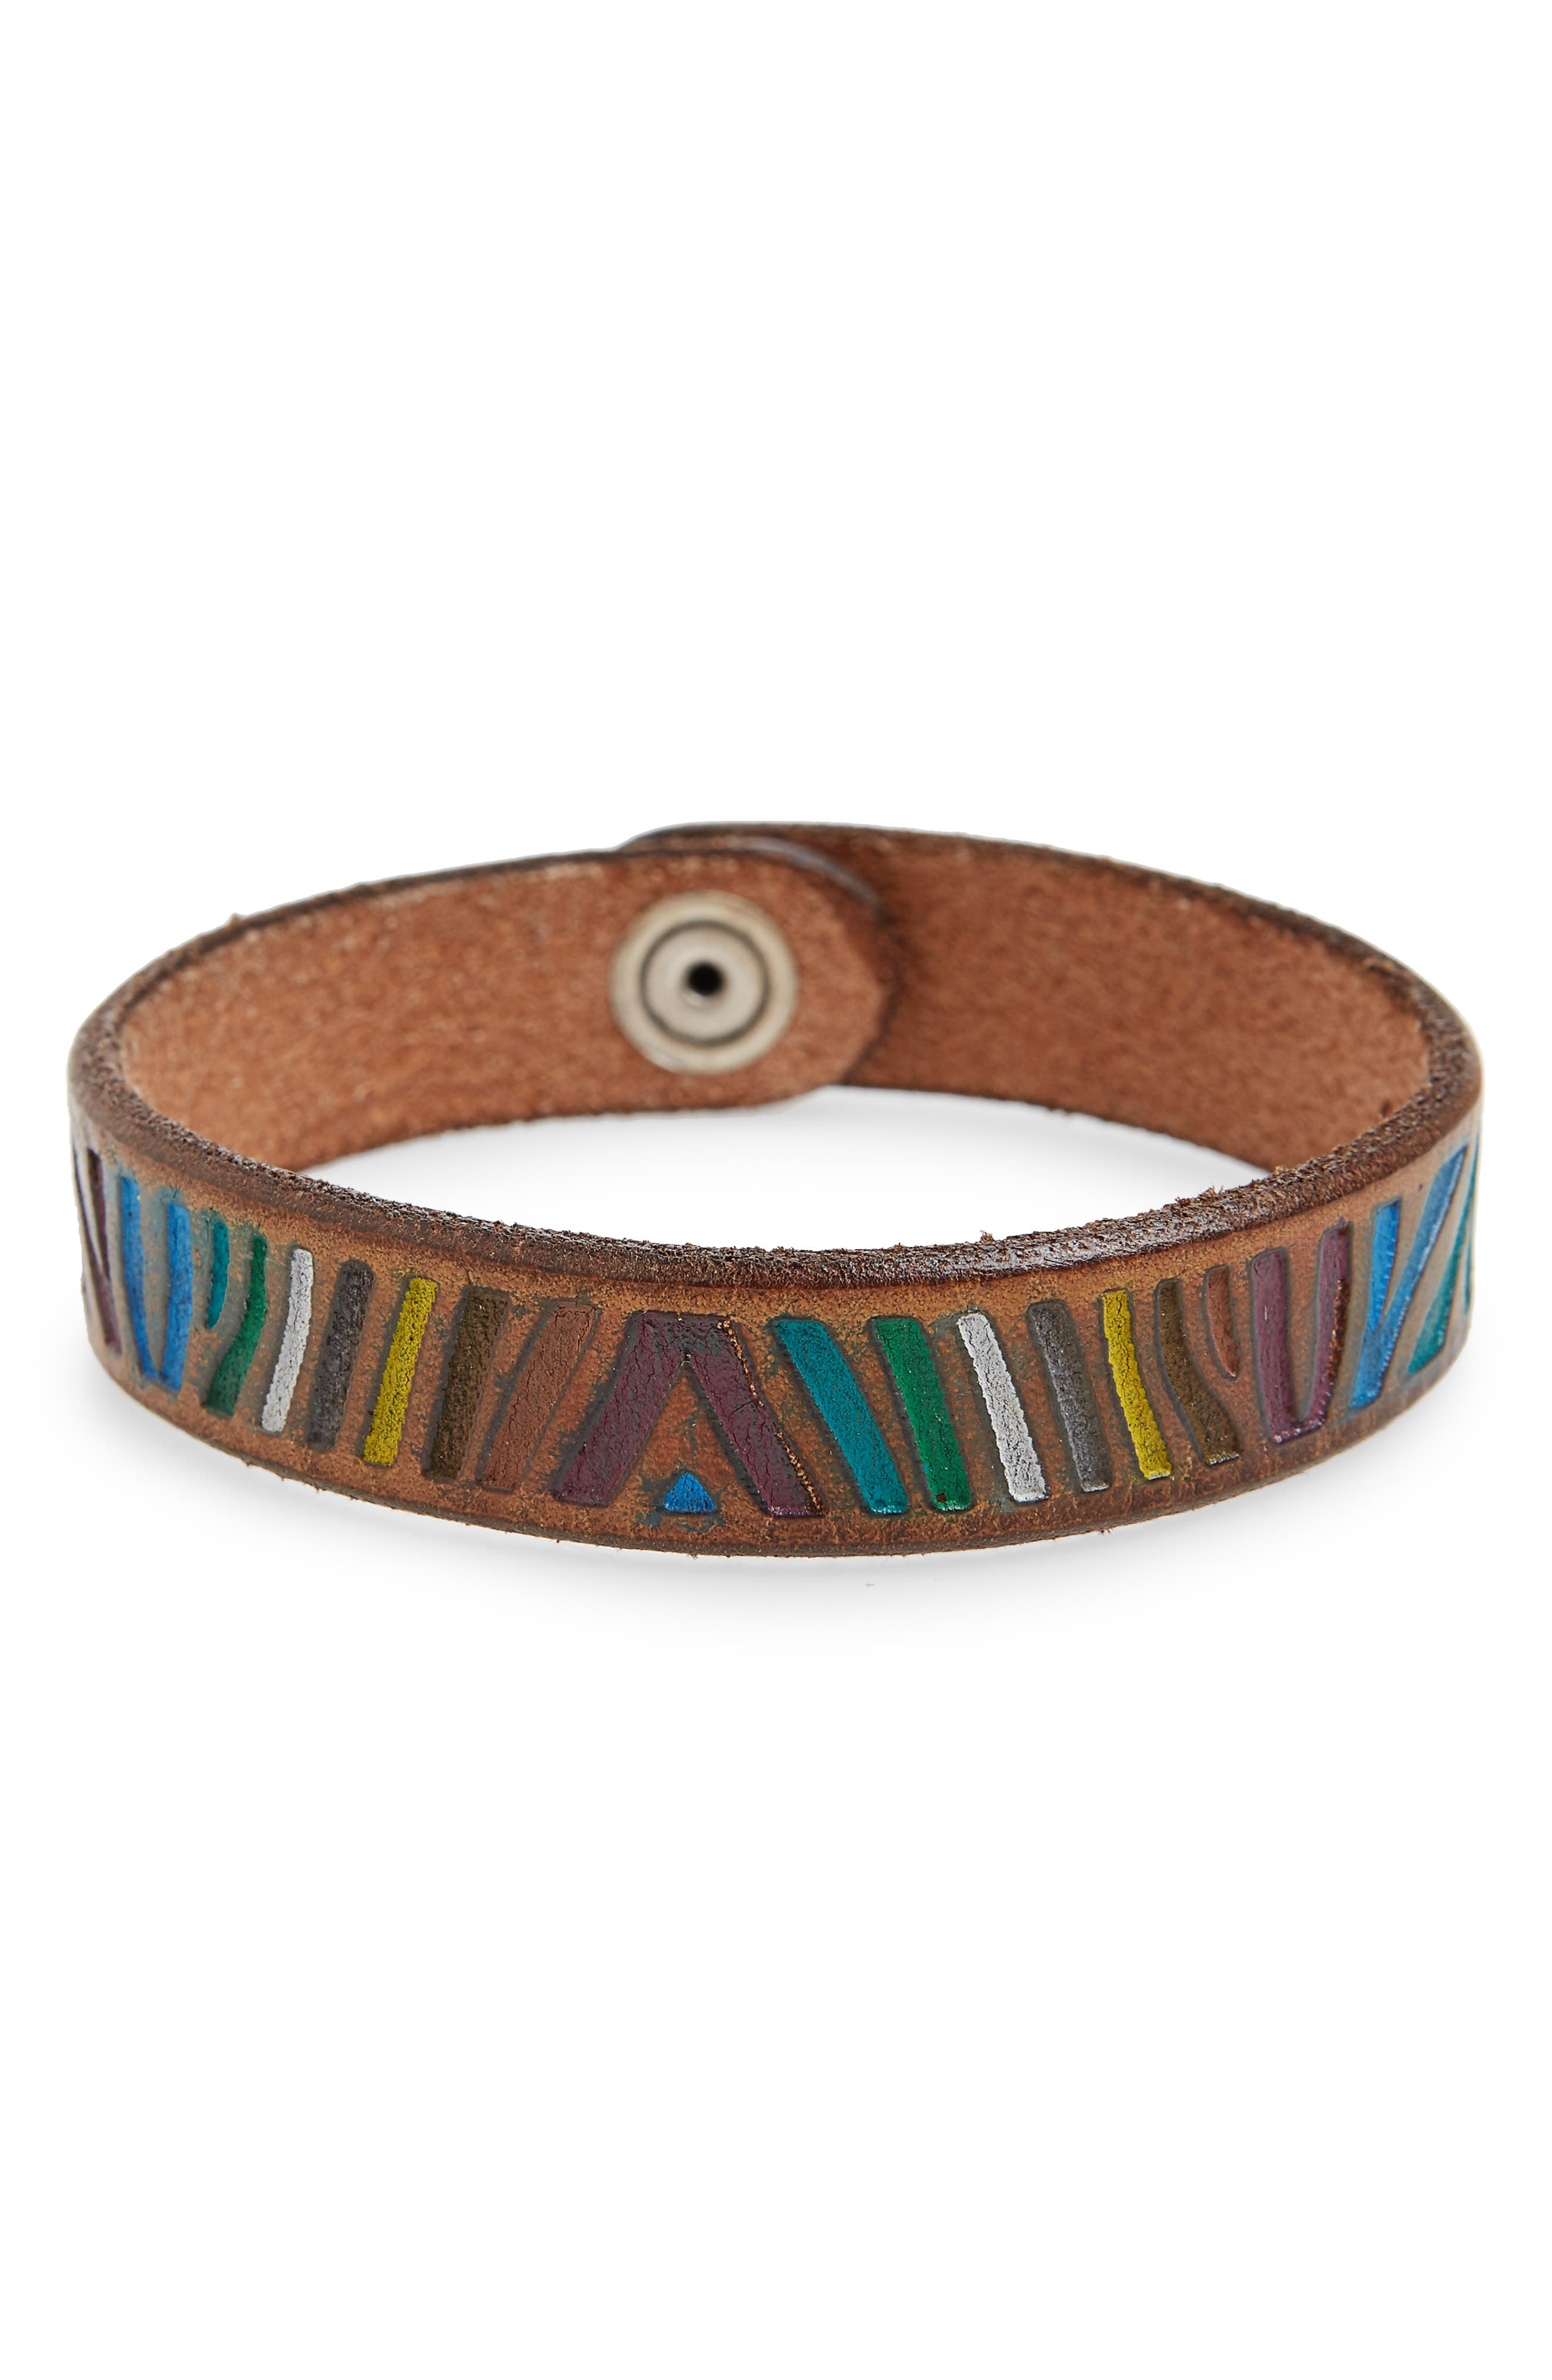 Zebra Leather Bracelet,                         Main,                         color, 200